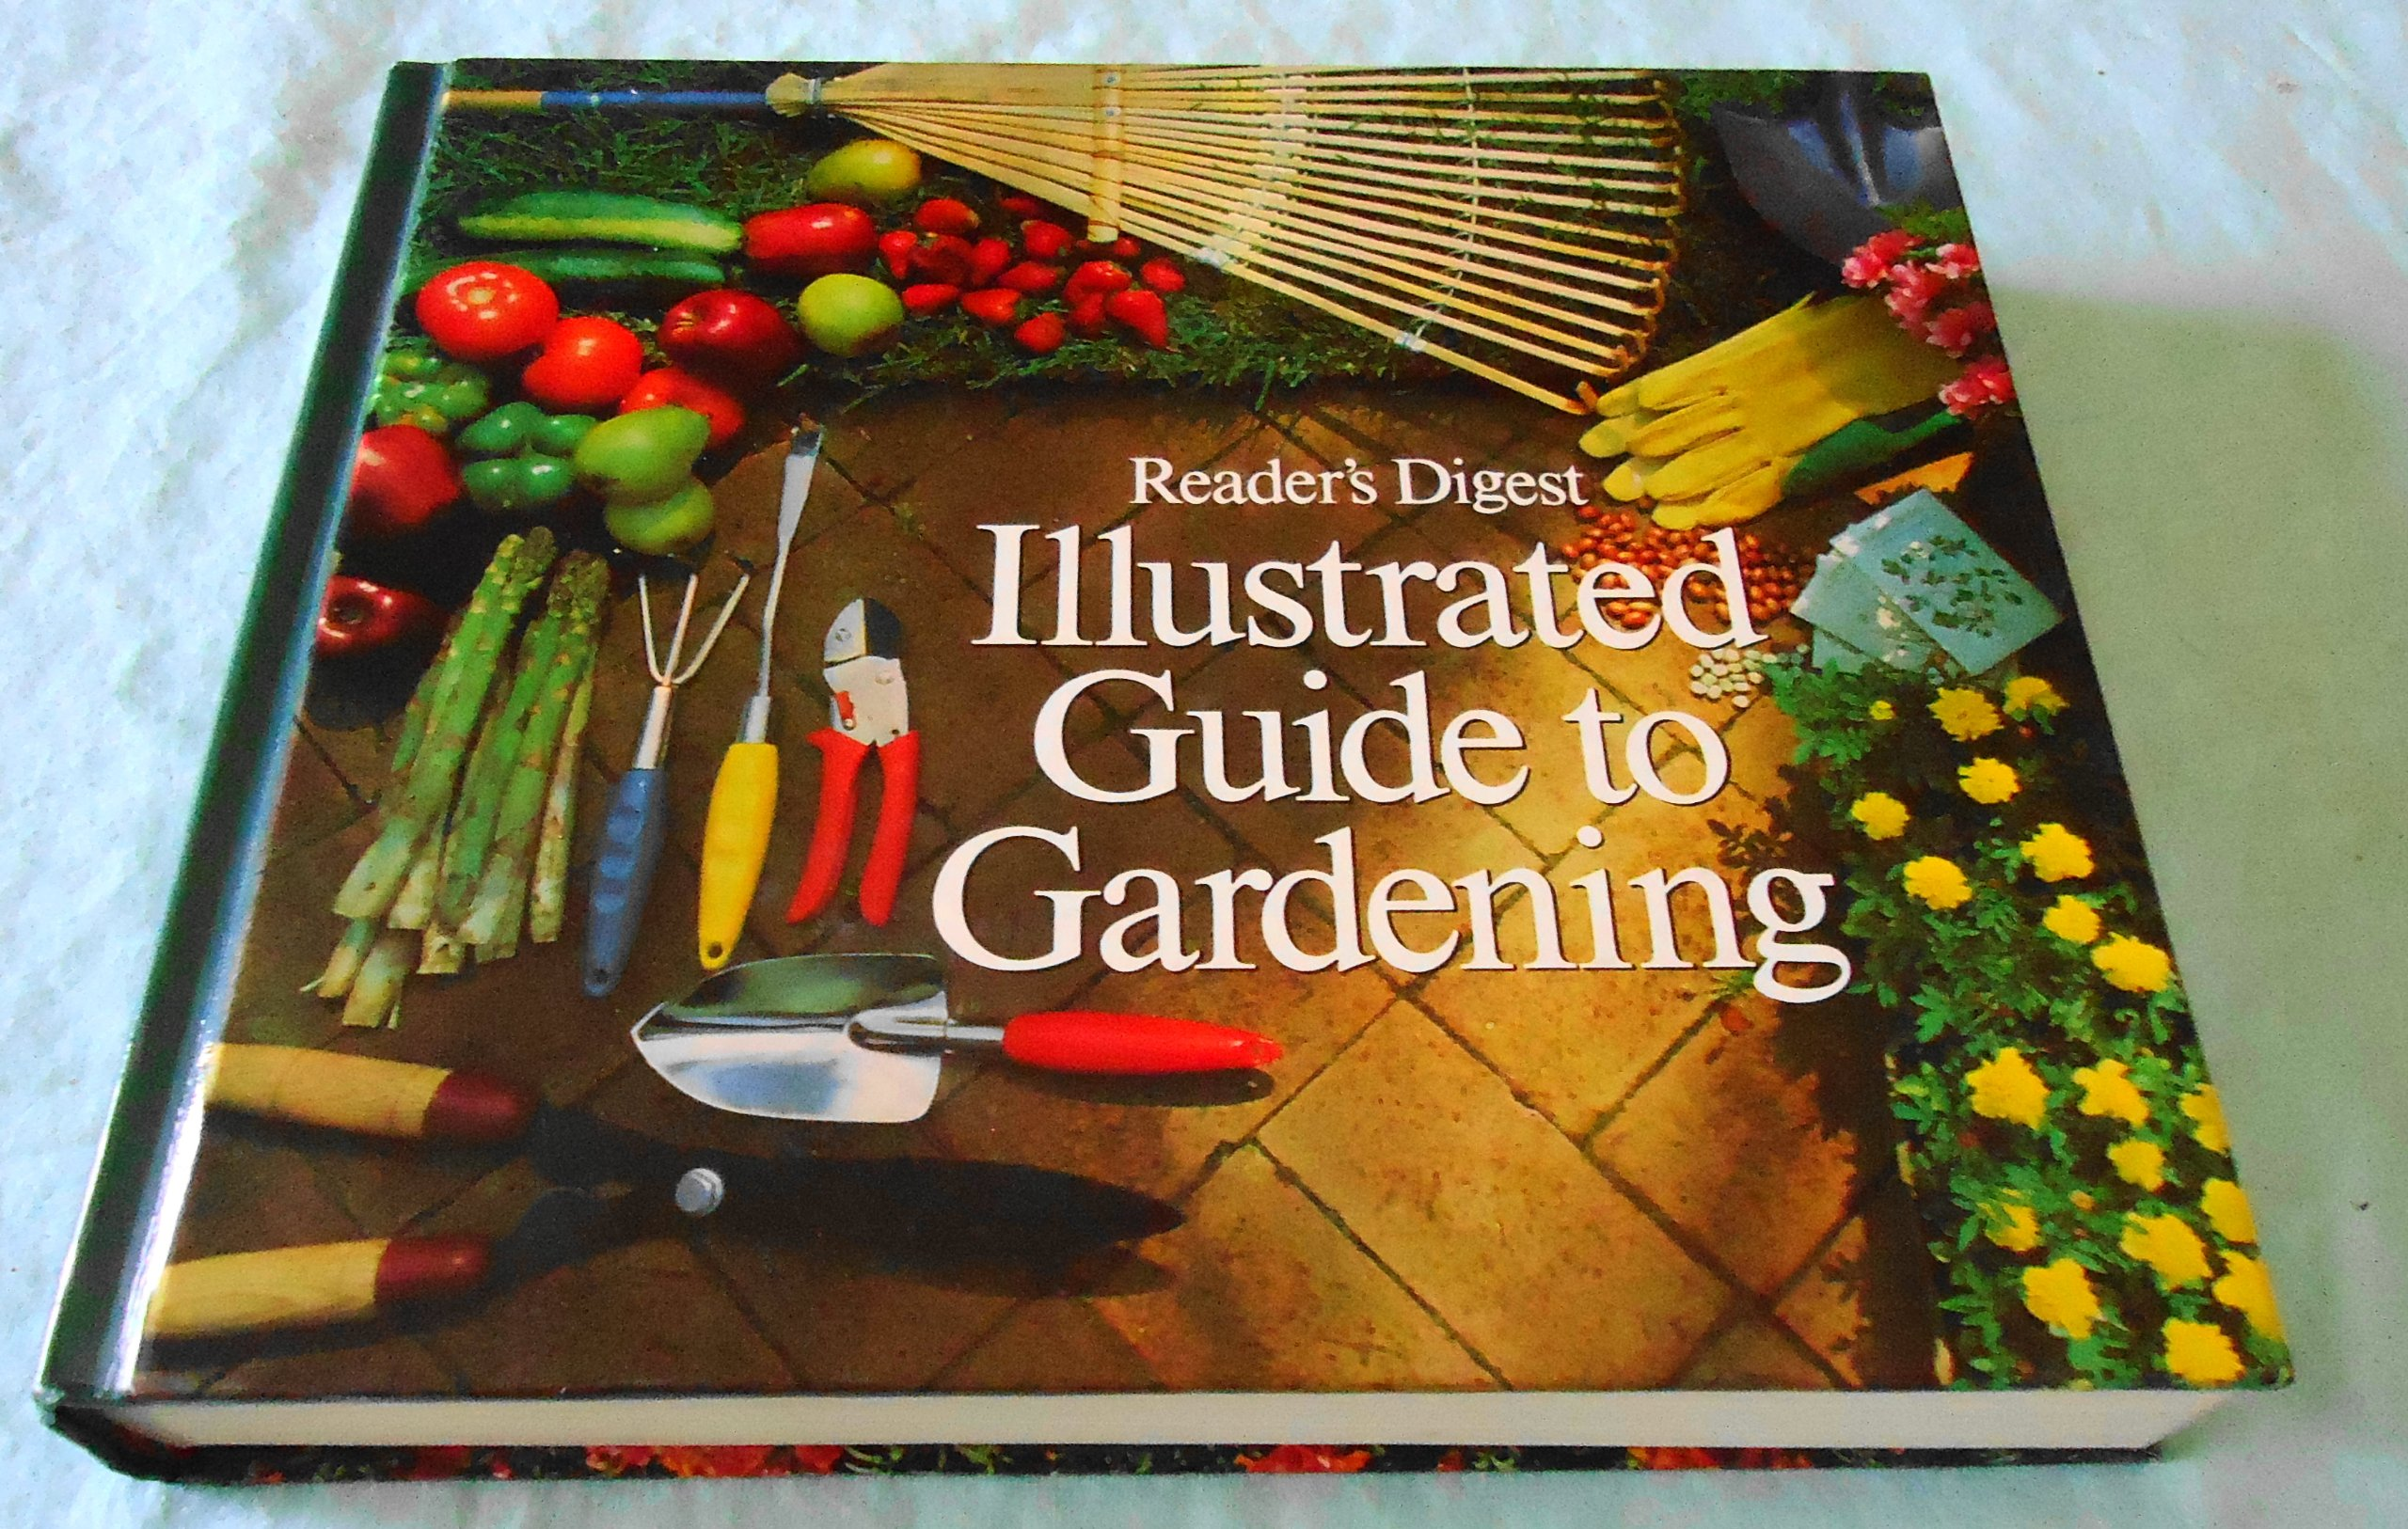 Illustrated Guide to Gardening: Using Plants to Best Advantage, Gardening Outdoors, Gardening Under Cover, Plants for Food, About the Soil, Controlling Pest, Diseases and Weeds - 1978 Edition